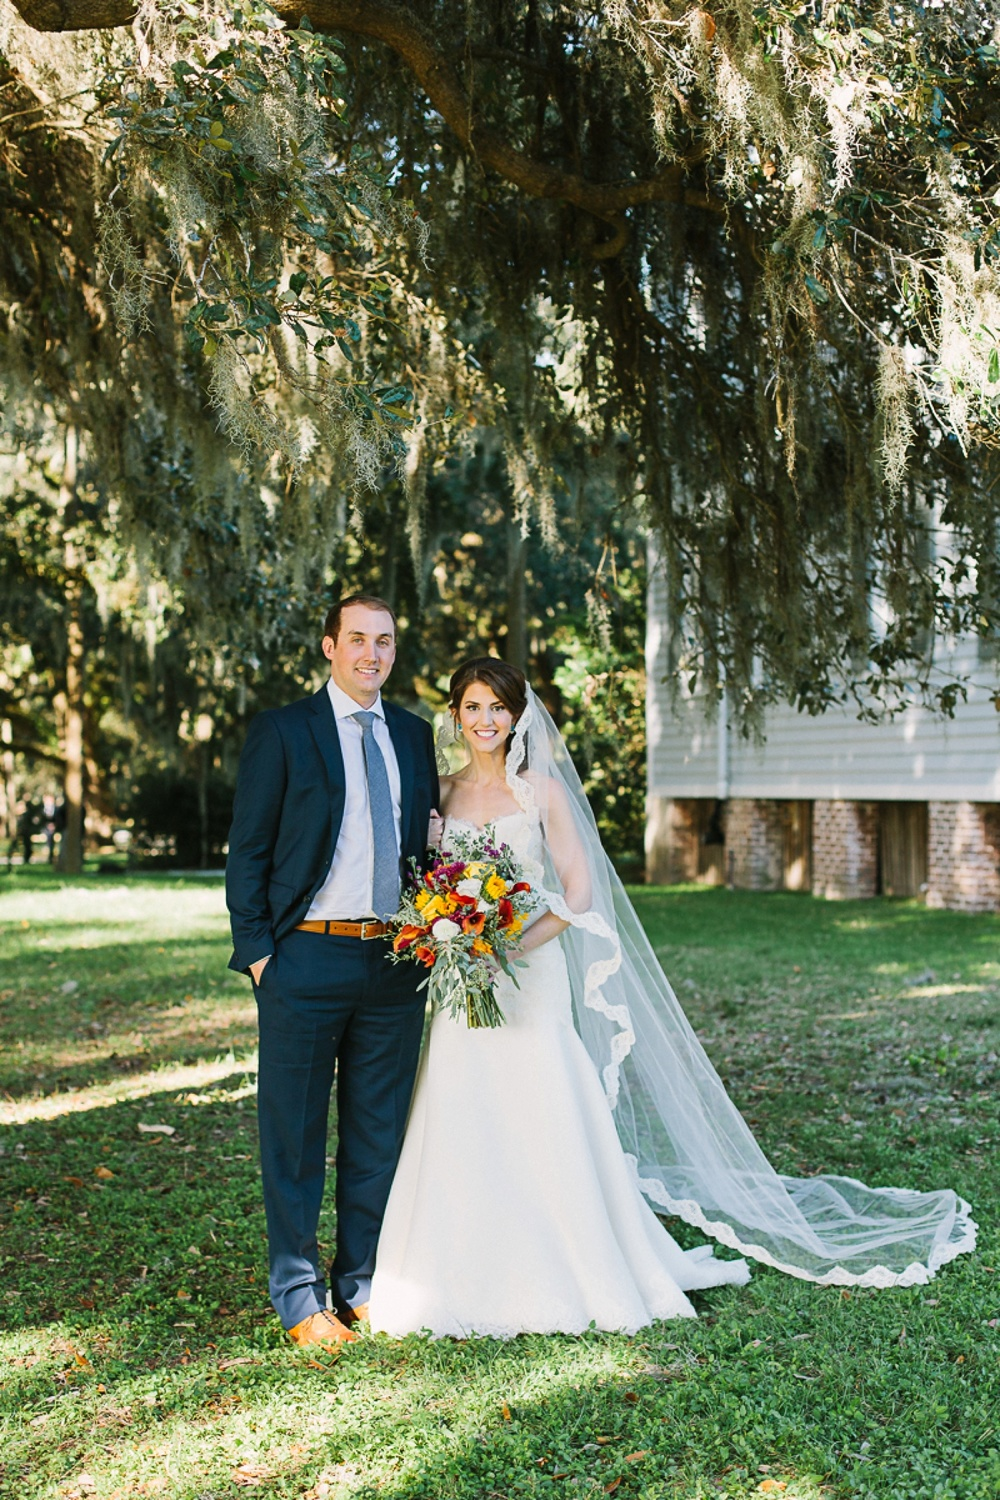 Lindsey_A_Miller_photography_charleston_mcleod_plantation_wedding_row_of_oaks_southern_classic_fall_spanish_moss_historic_home_040.jpg